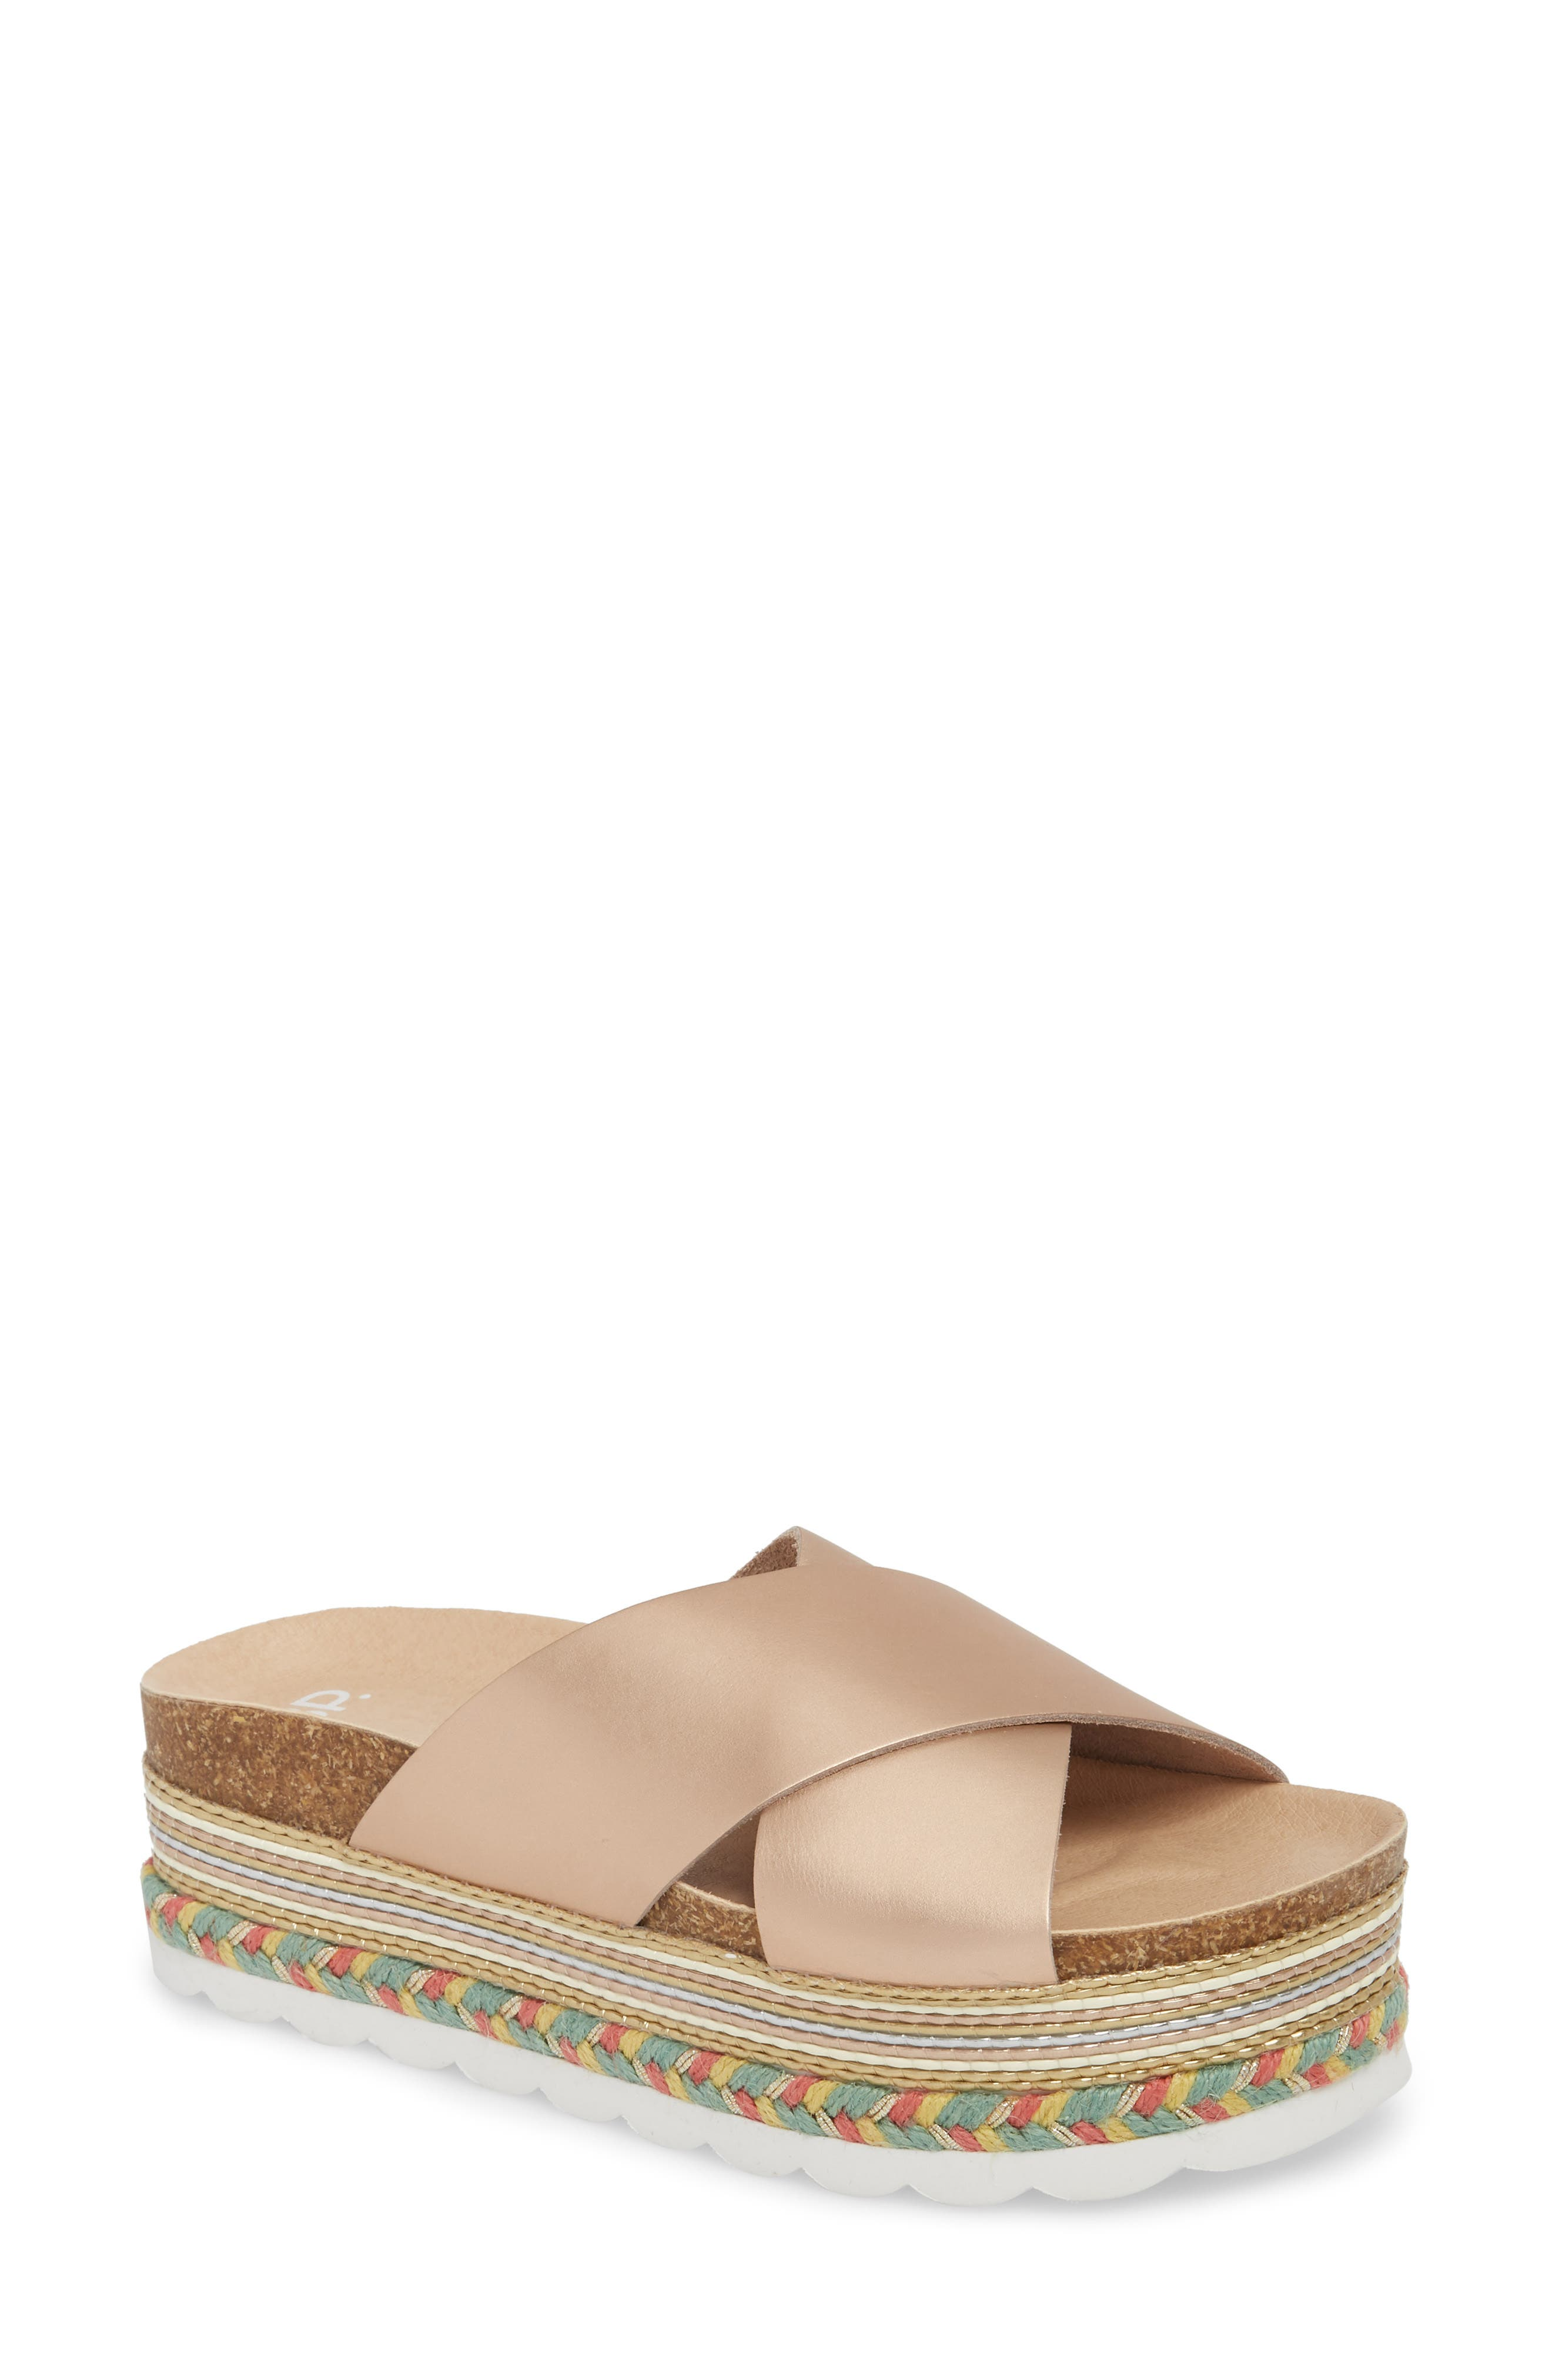 klub nico shoes loafers slides carnival category 830535